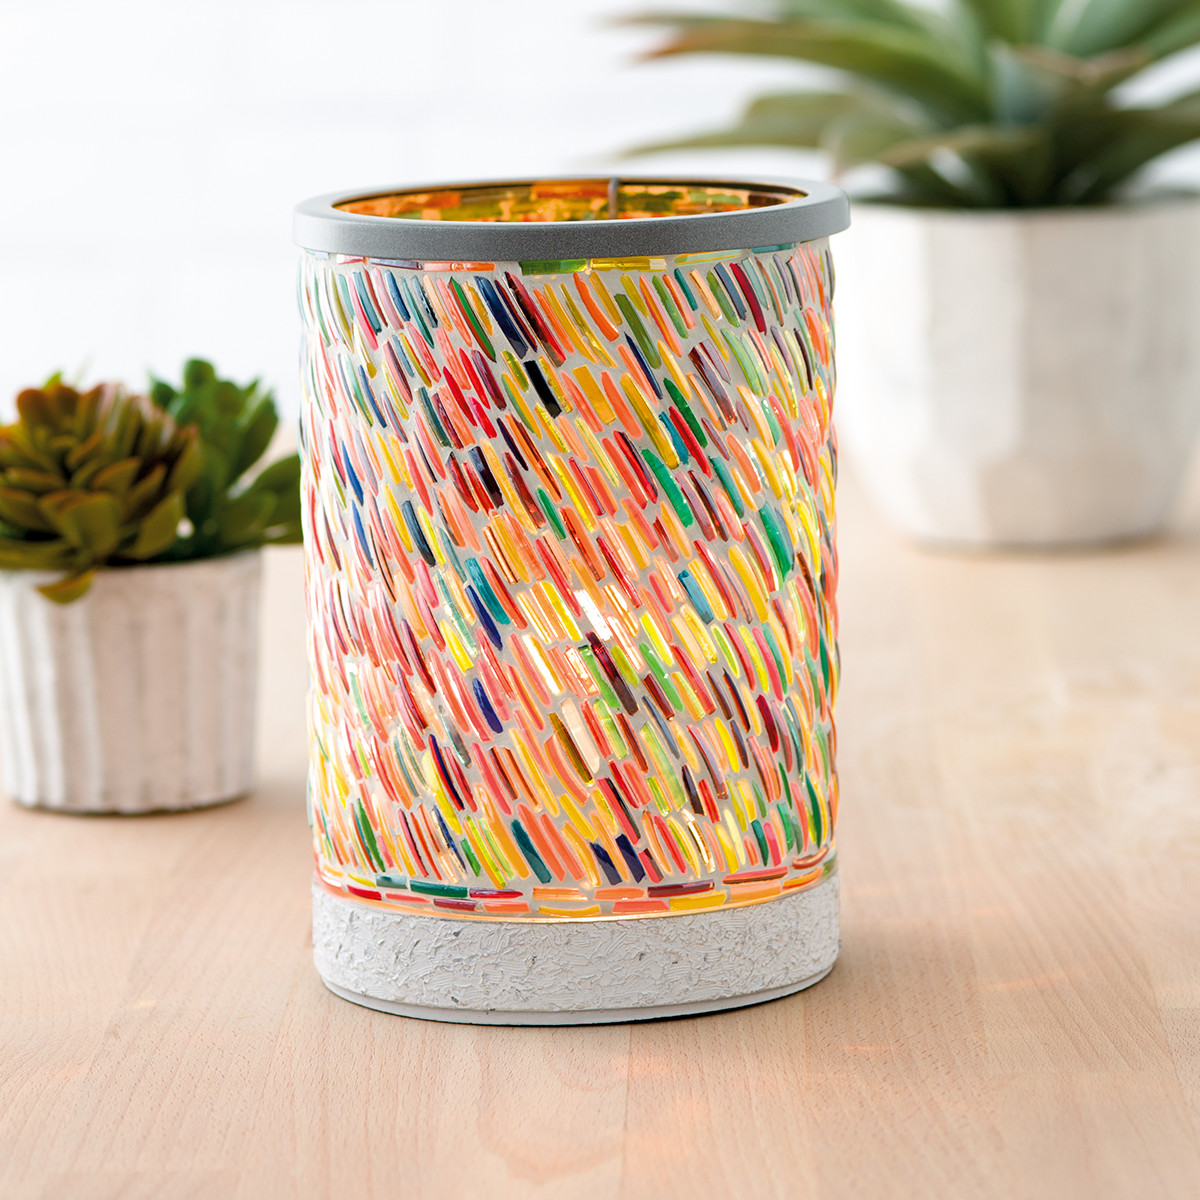 colors of the rainbow scentsy warmer scentsy online store